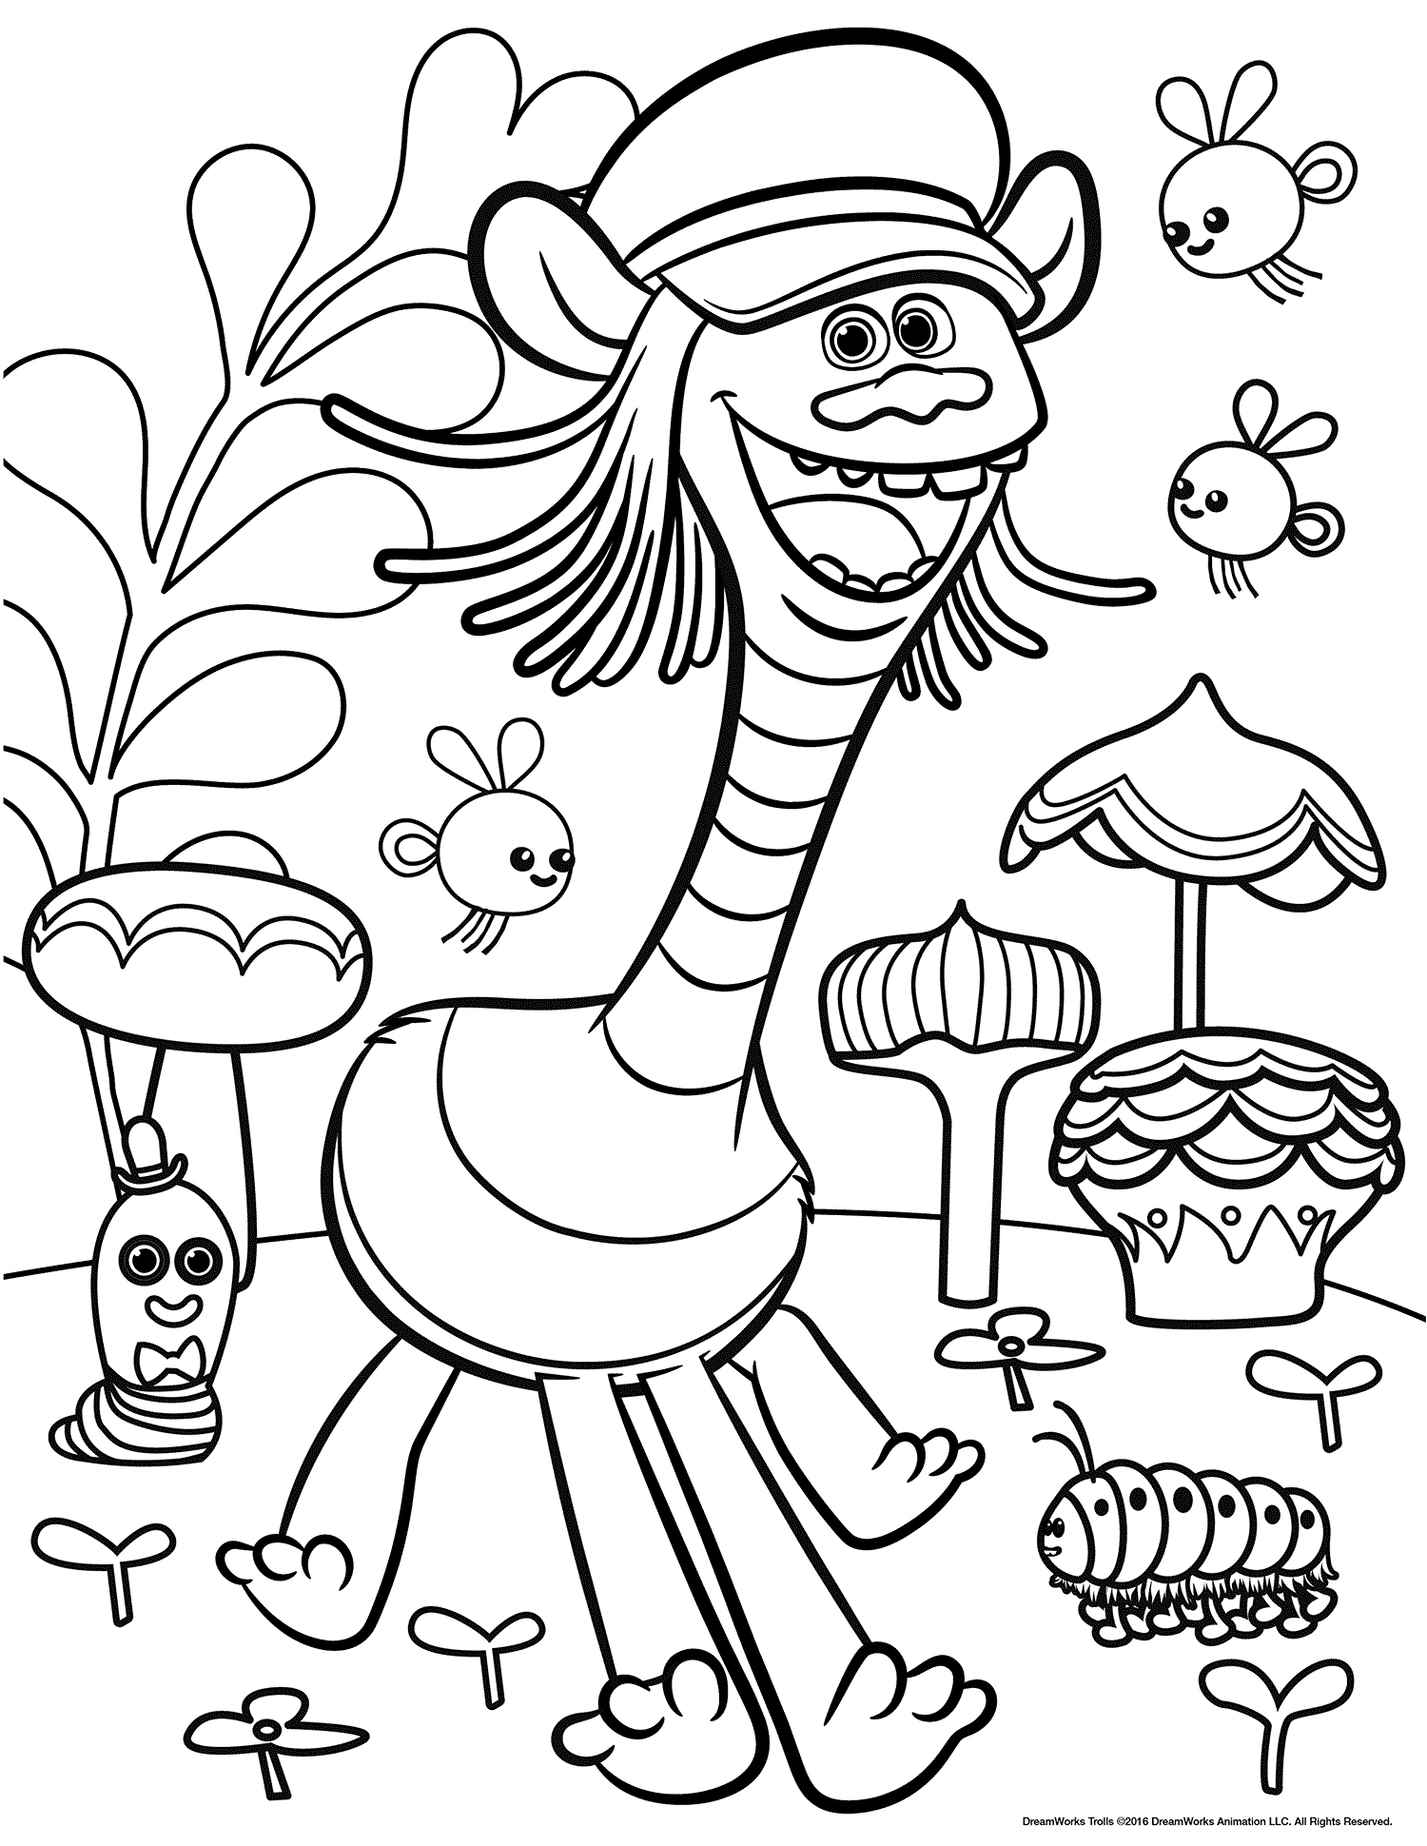 Trolls Coloring Pages Dreamworks